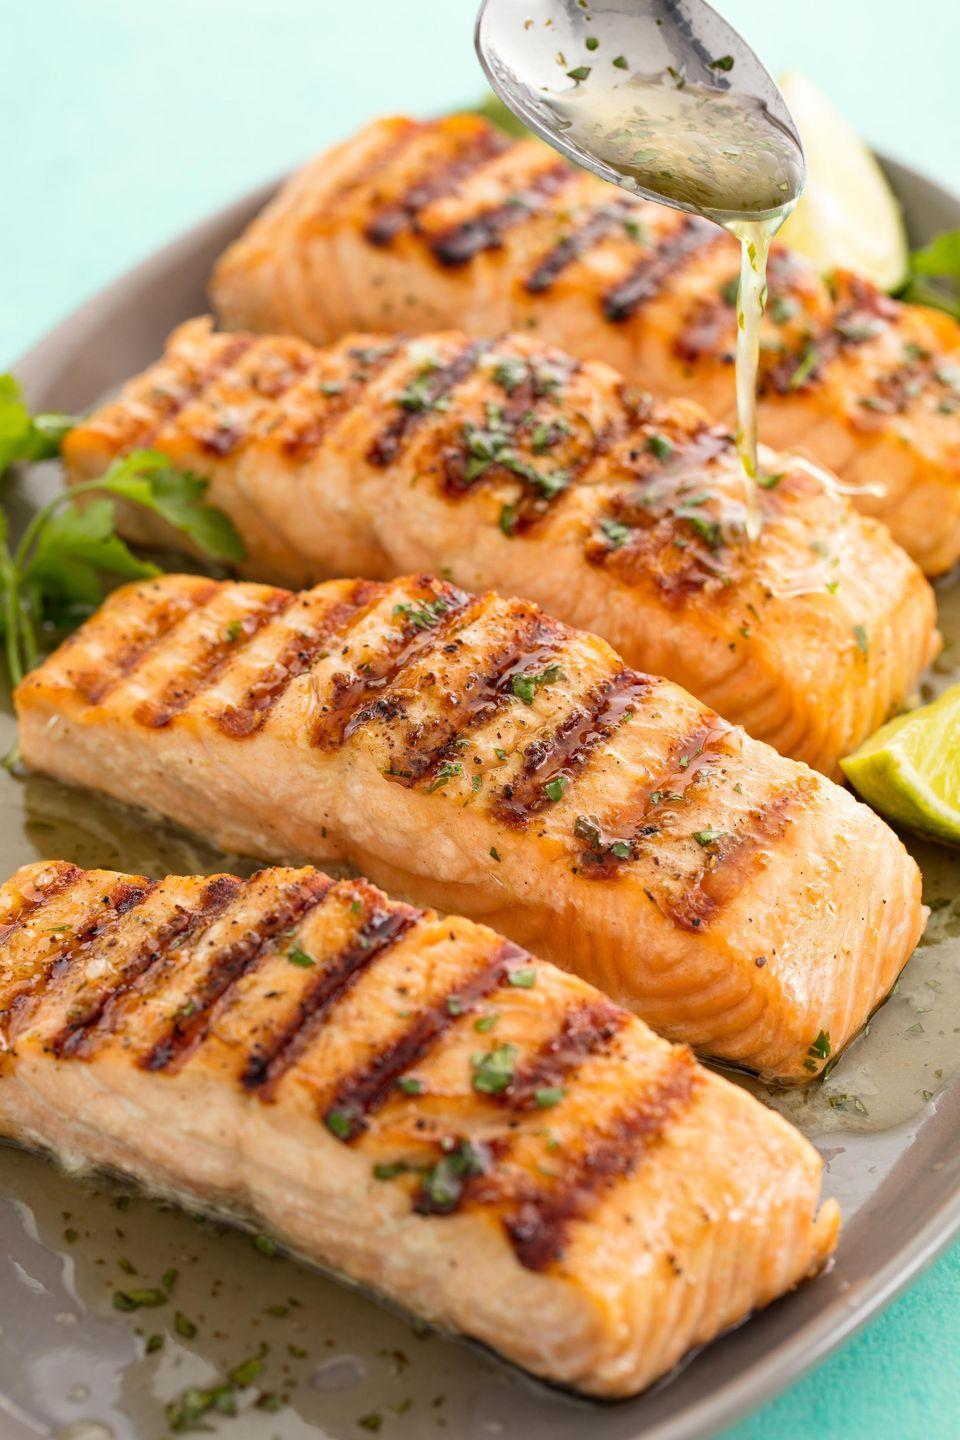 "<p>Dust off the grill.</p><p>Get the recipe from <a href=""https://www.delish.com/cooking/recipe-ideas/recipes/a58718/best-grilled-salmon-fillets-recipe/"" rel=""nofollow noopener"" target=""_blank"" data-ylk=""slk:Delish"" class=""link rapid-noclick-resp"">Delish</a>. </p>"